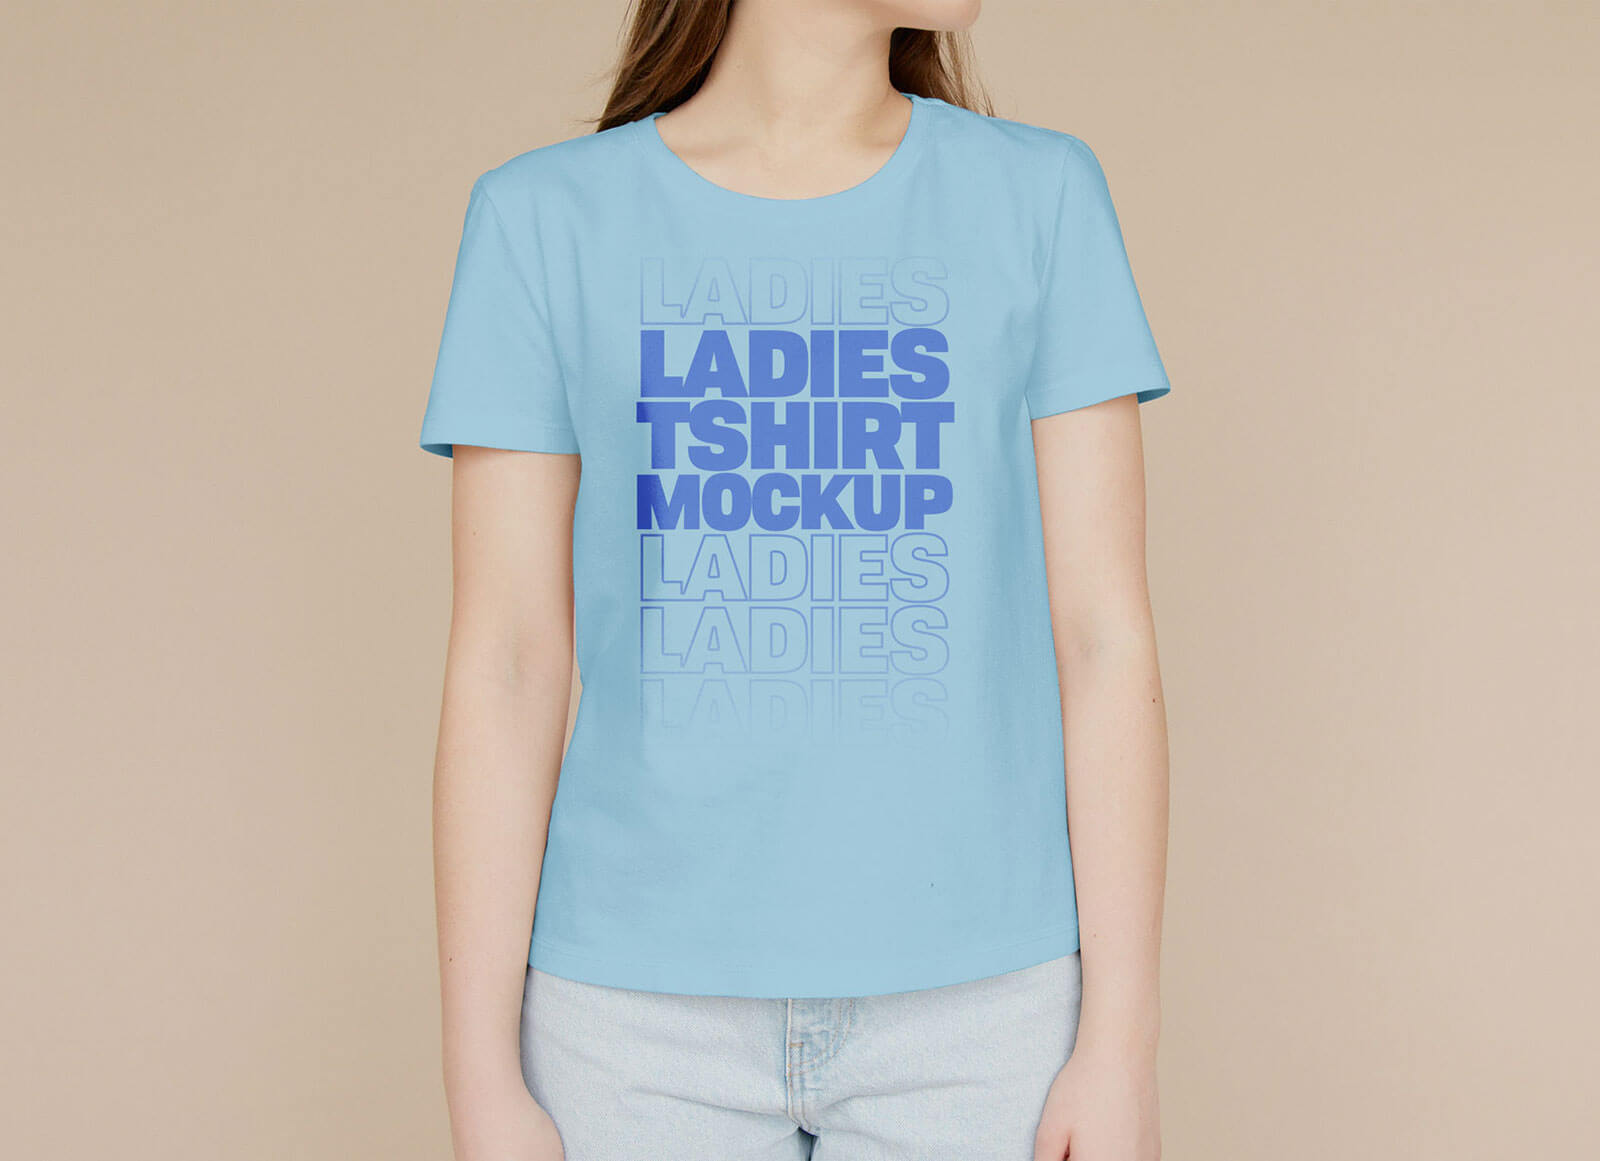 Free-Ladies-T-Shirt-Mockup-PSD